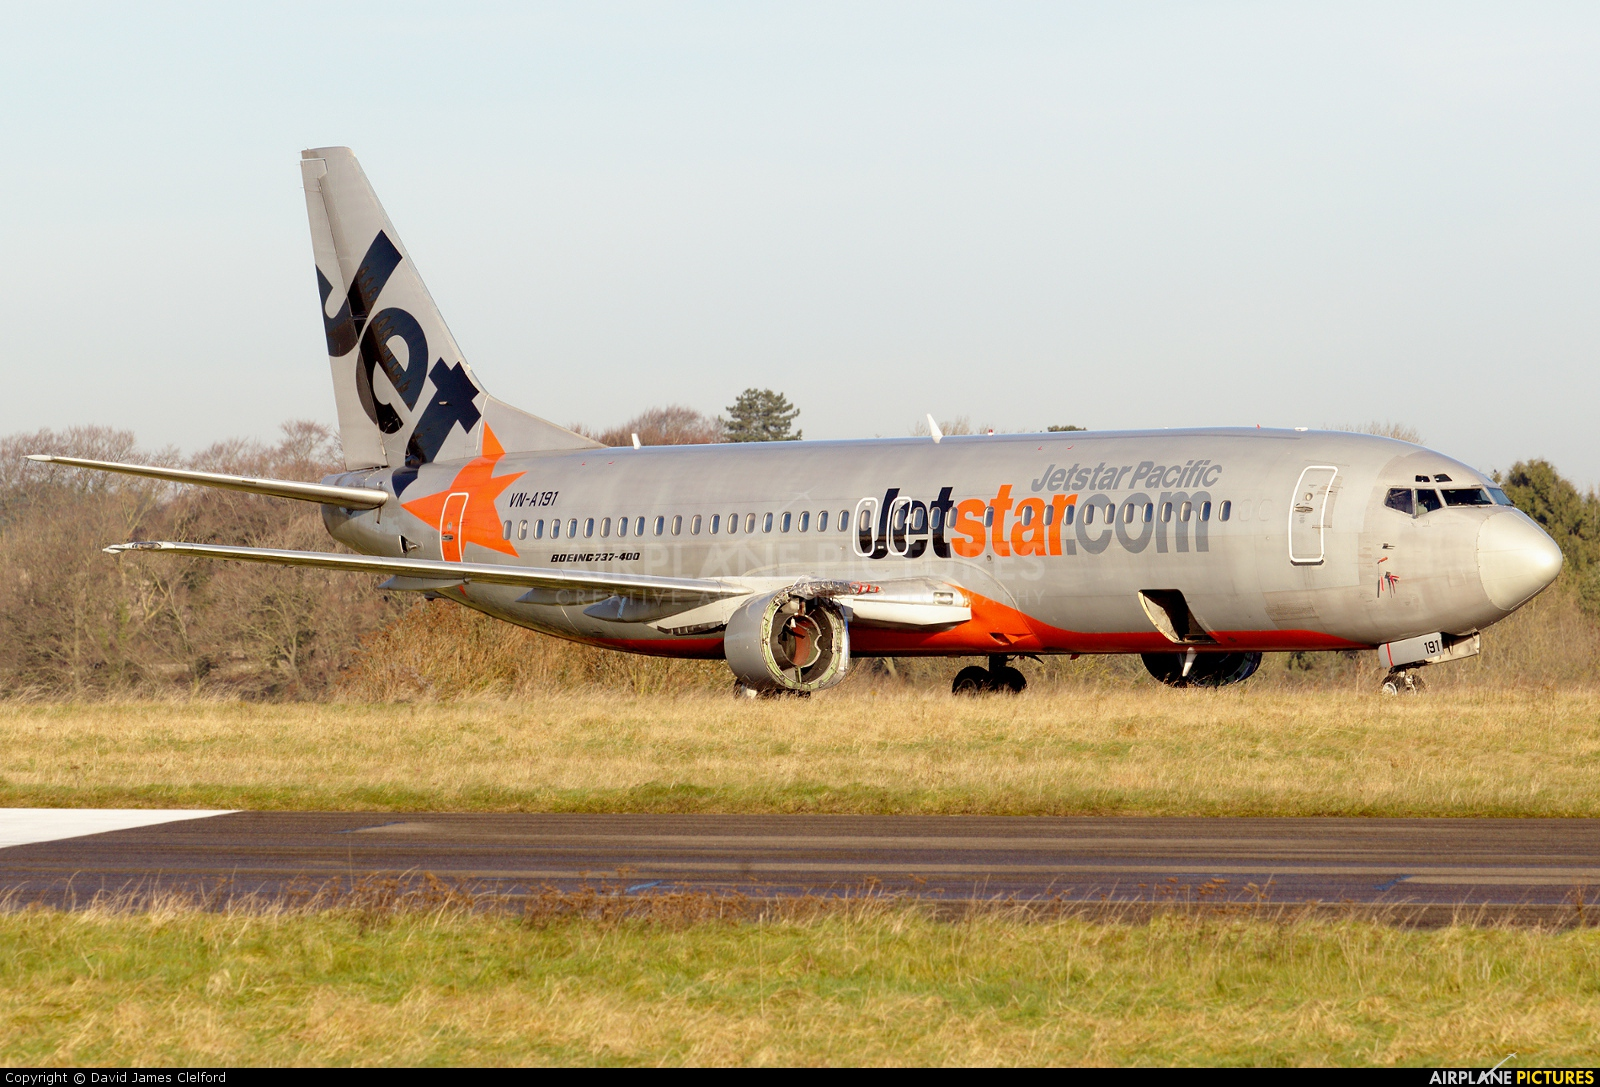 Vn a191 jetstar pacific airlines boeing 737 400 at kemble jetstar pacific airlines boeing 737 400 vn a191 sciox Images